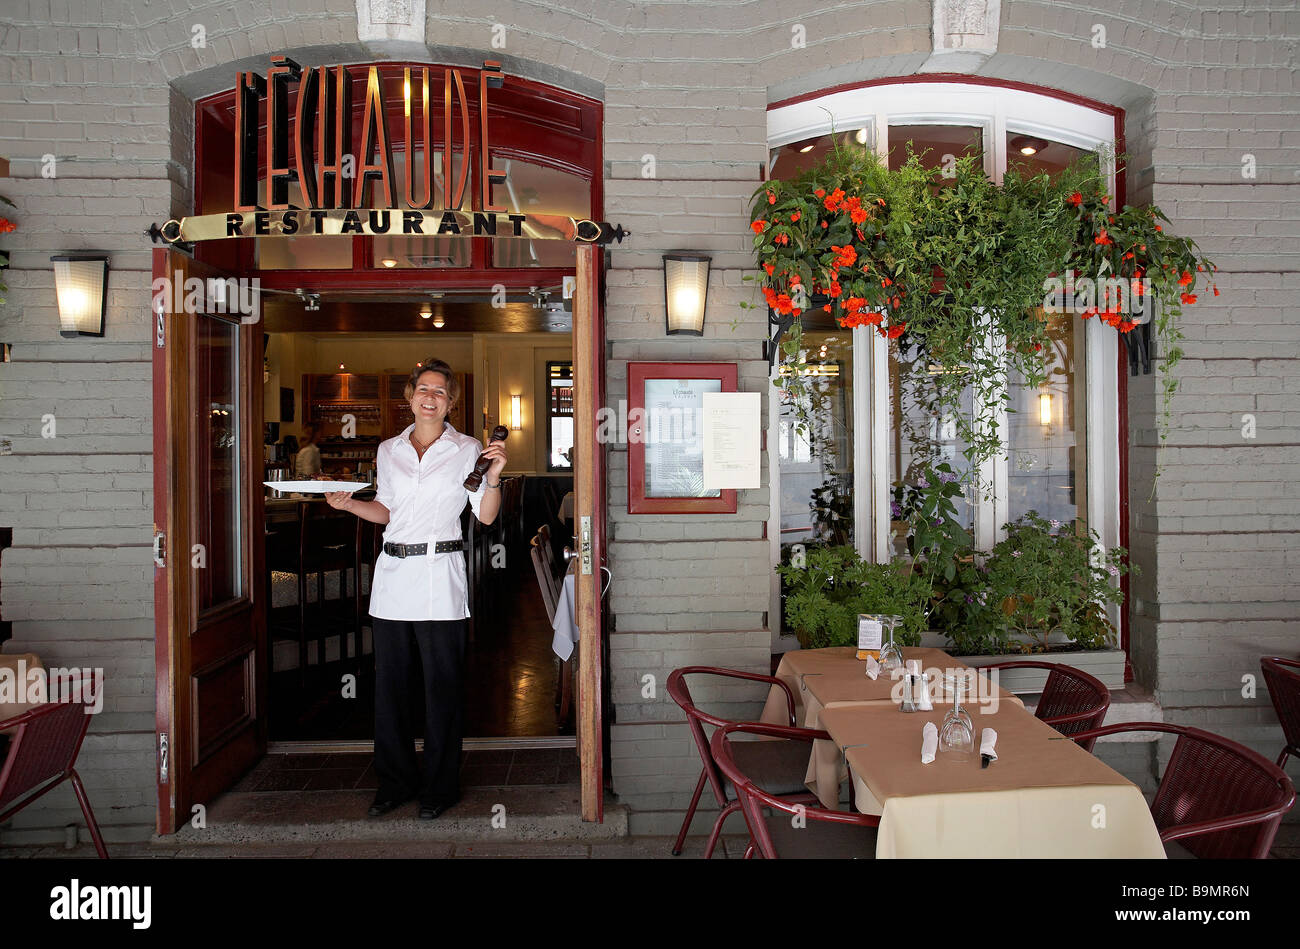 Canada quebec province quebec city vieux port district stock photo royalty free image - Restaurant vieux port de quebec ...